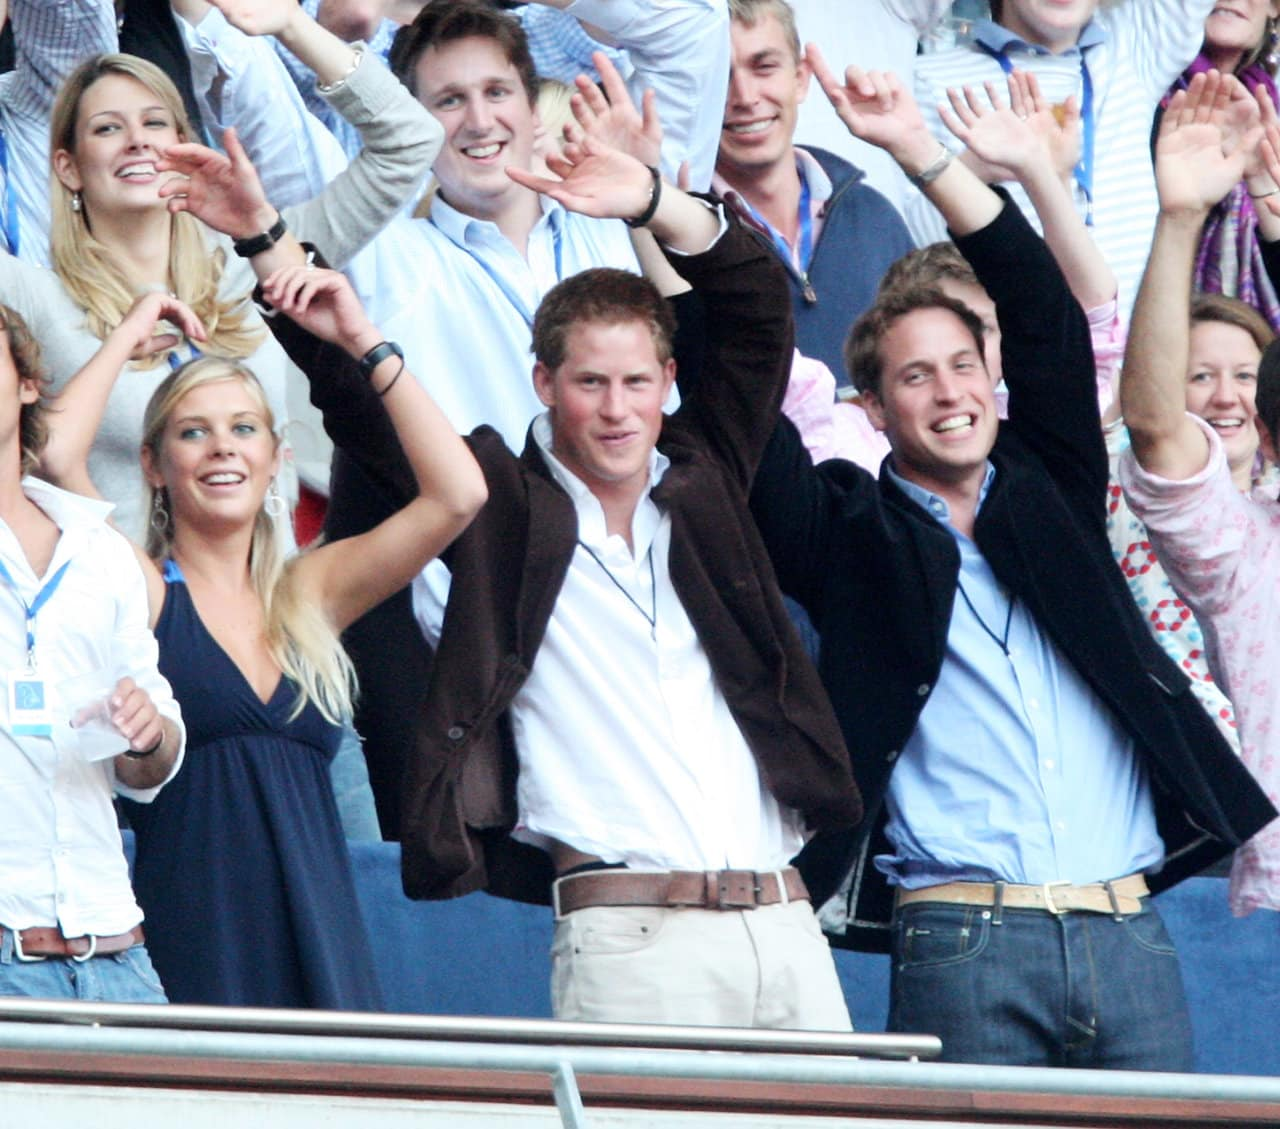 Prince William and Prince Harry and Chelsy Davy watch Rod Stewart perform during the Concert for Diana at Wembley Stadium on July 1, 2007 in London, England. (Photo by Getty Images/Getty Images)